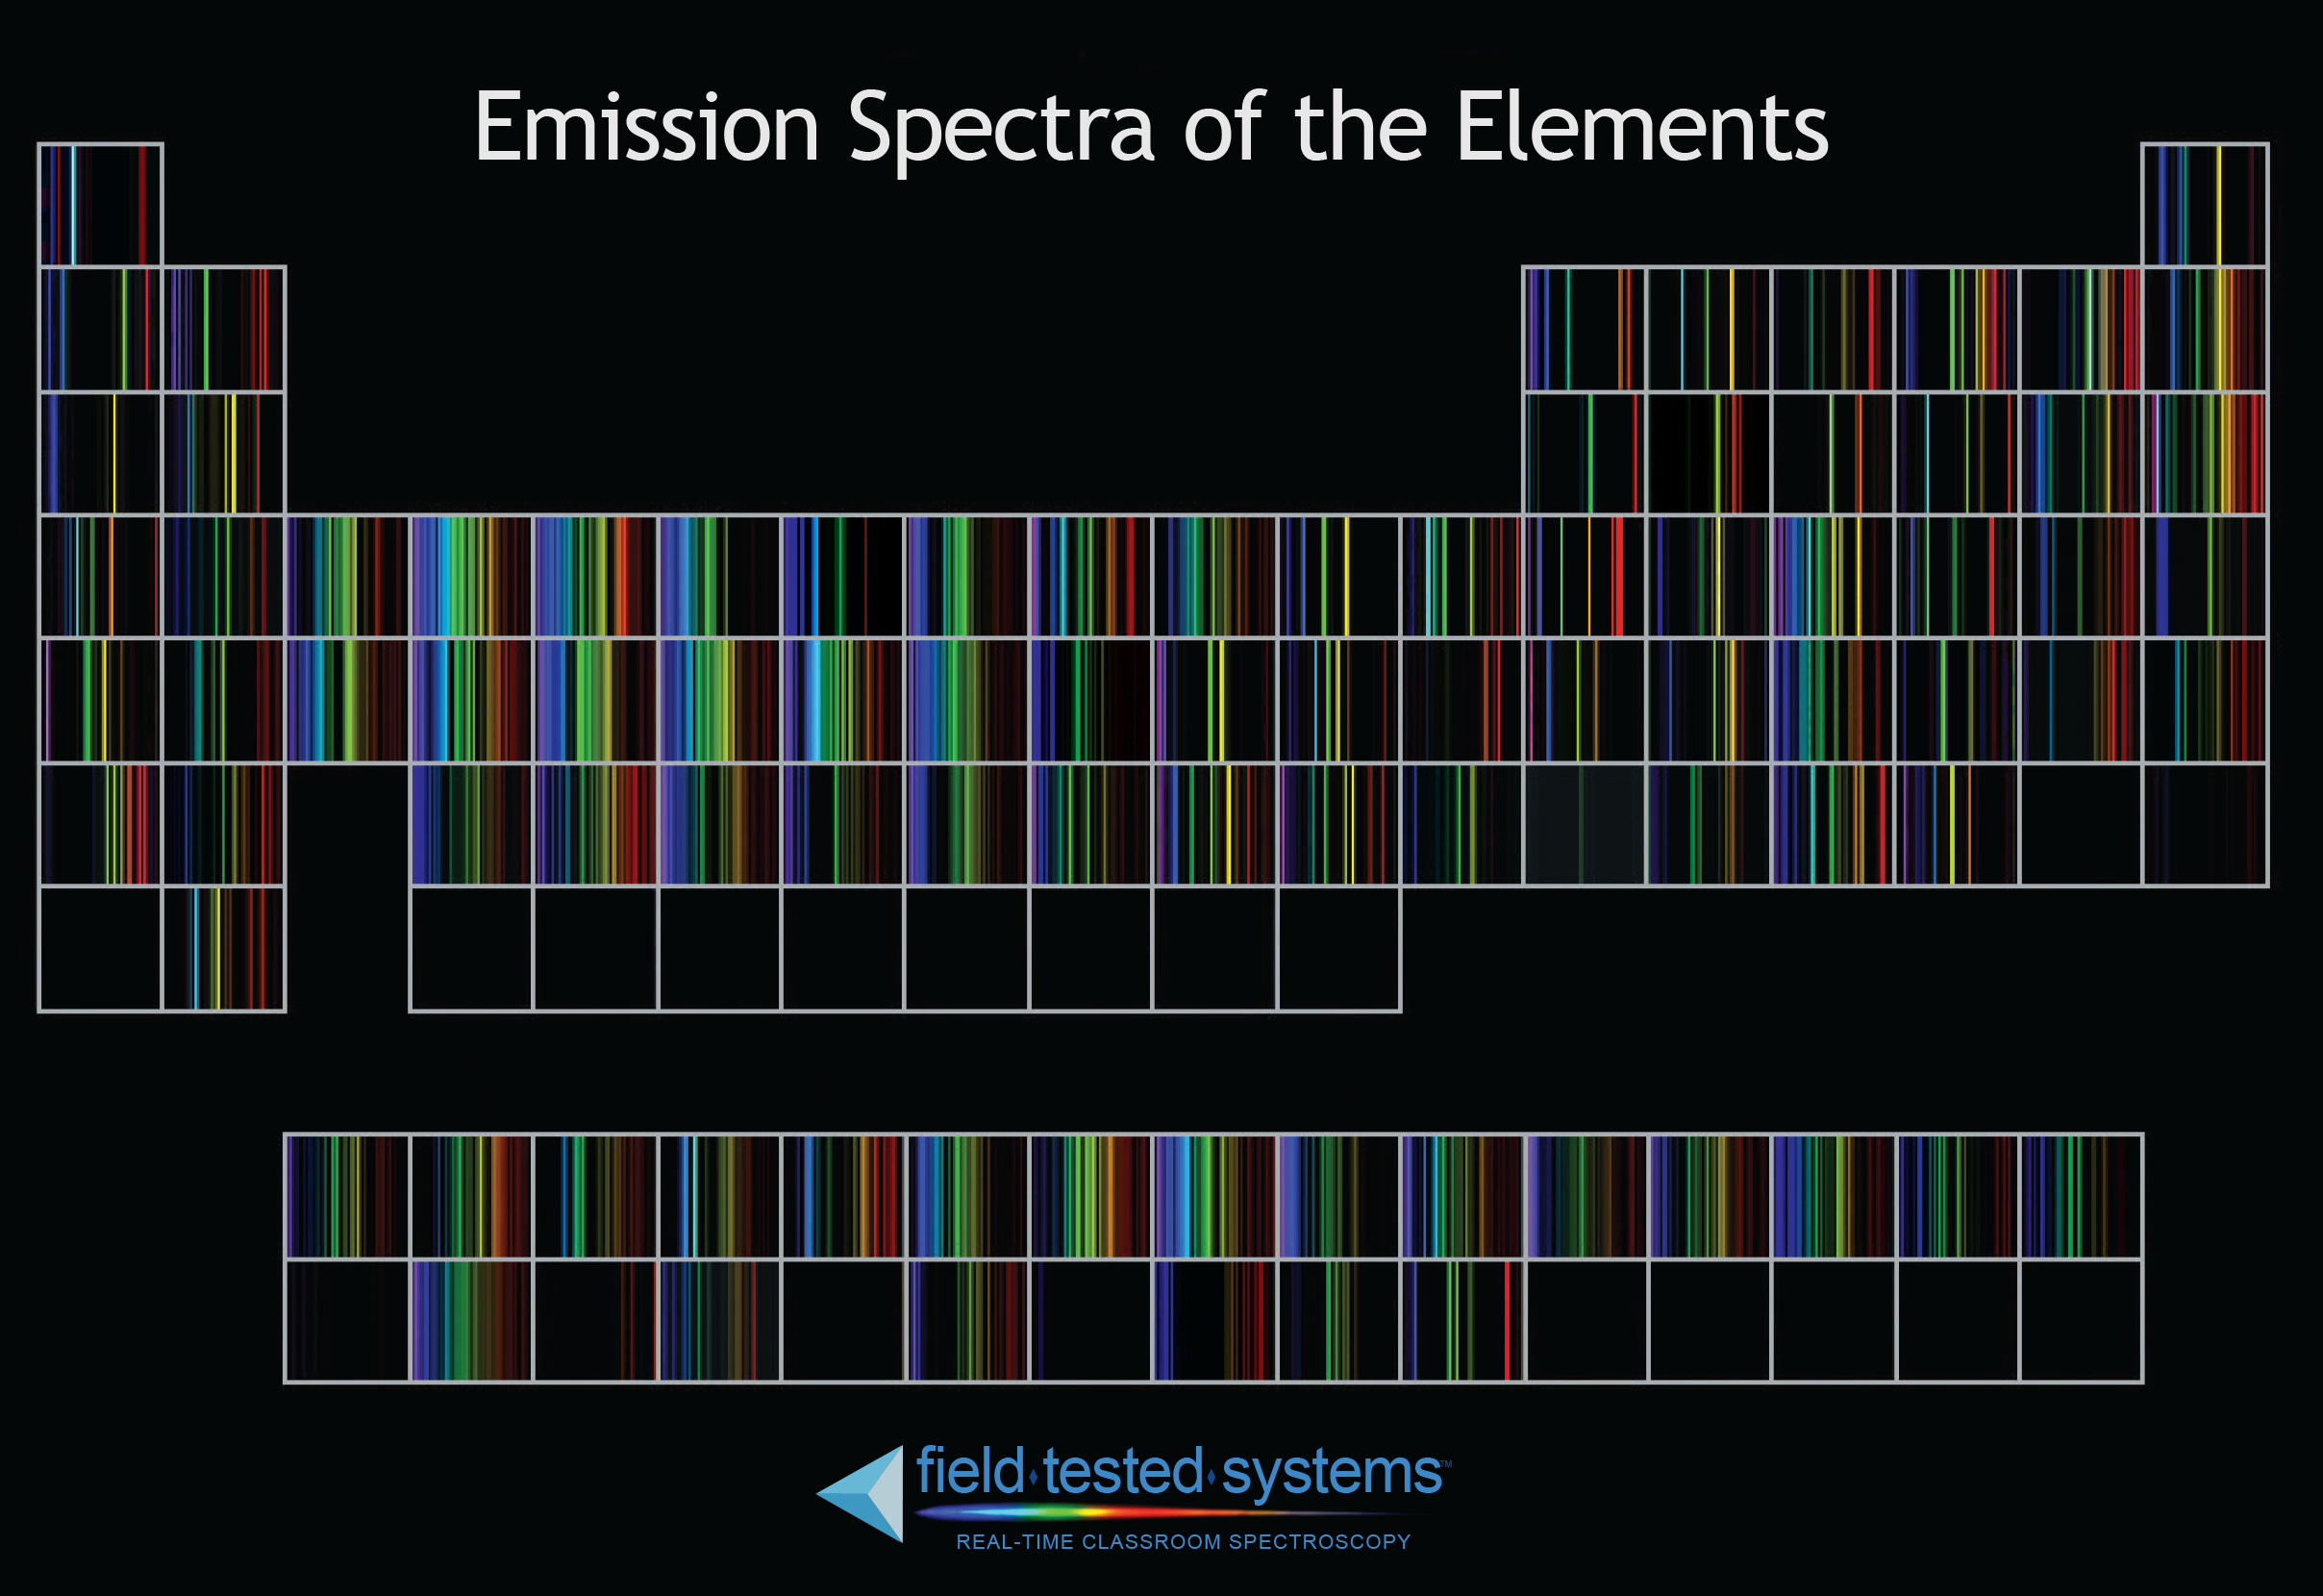 All matter has a resonant frequency that is represented in this periodic table of visible spectra gamestrikefo Choice Image